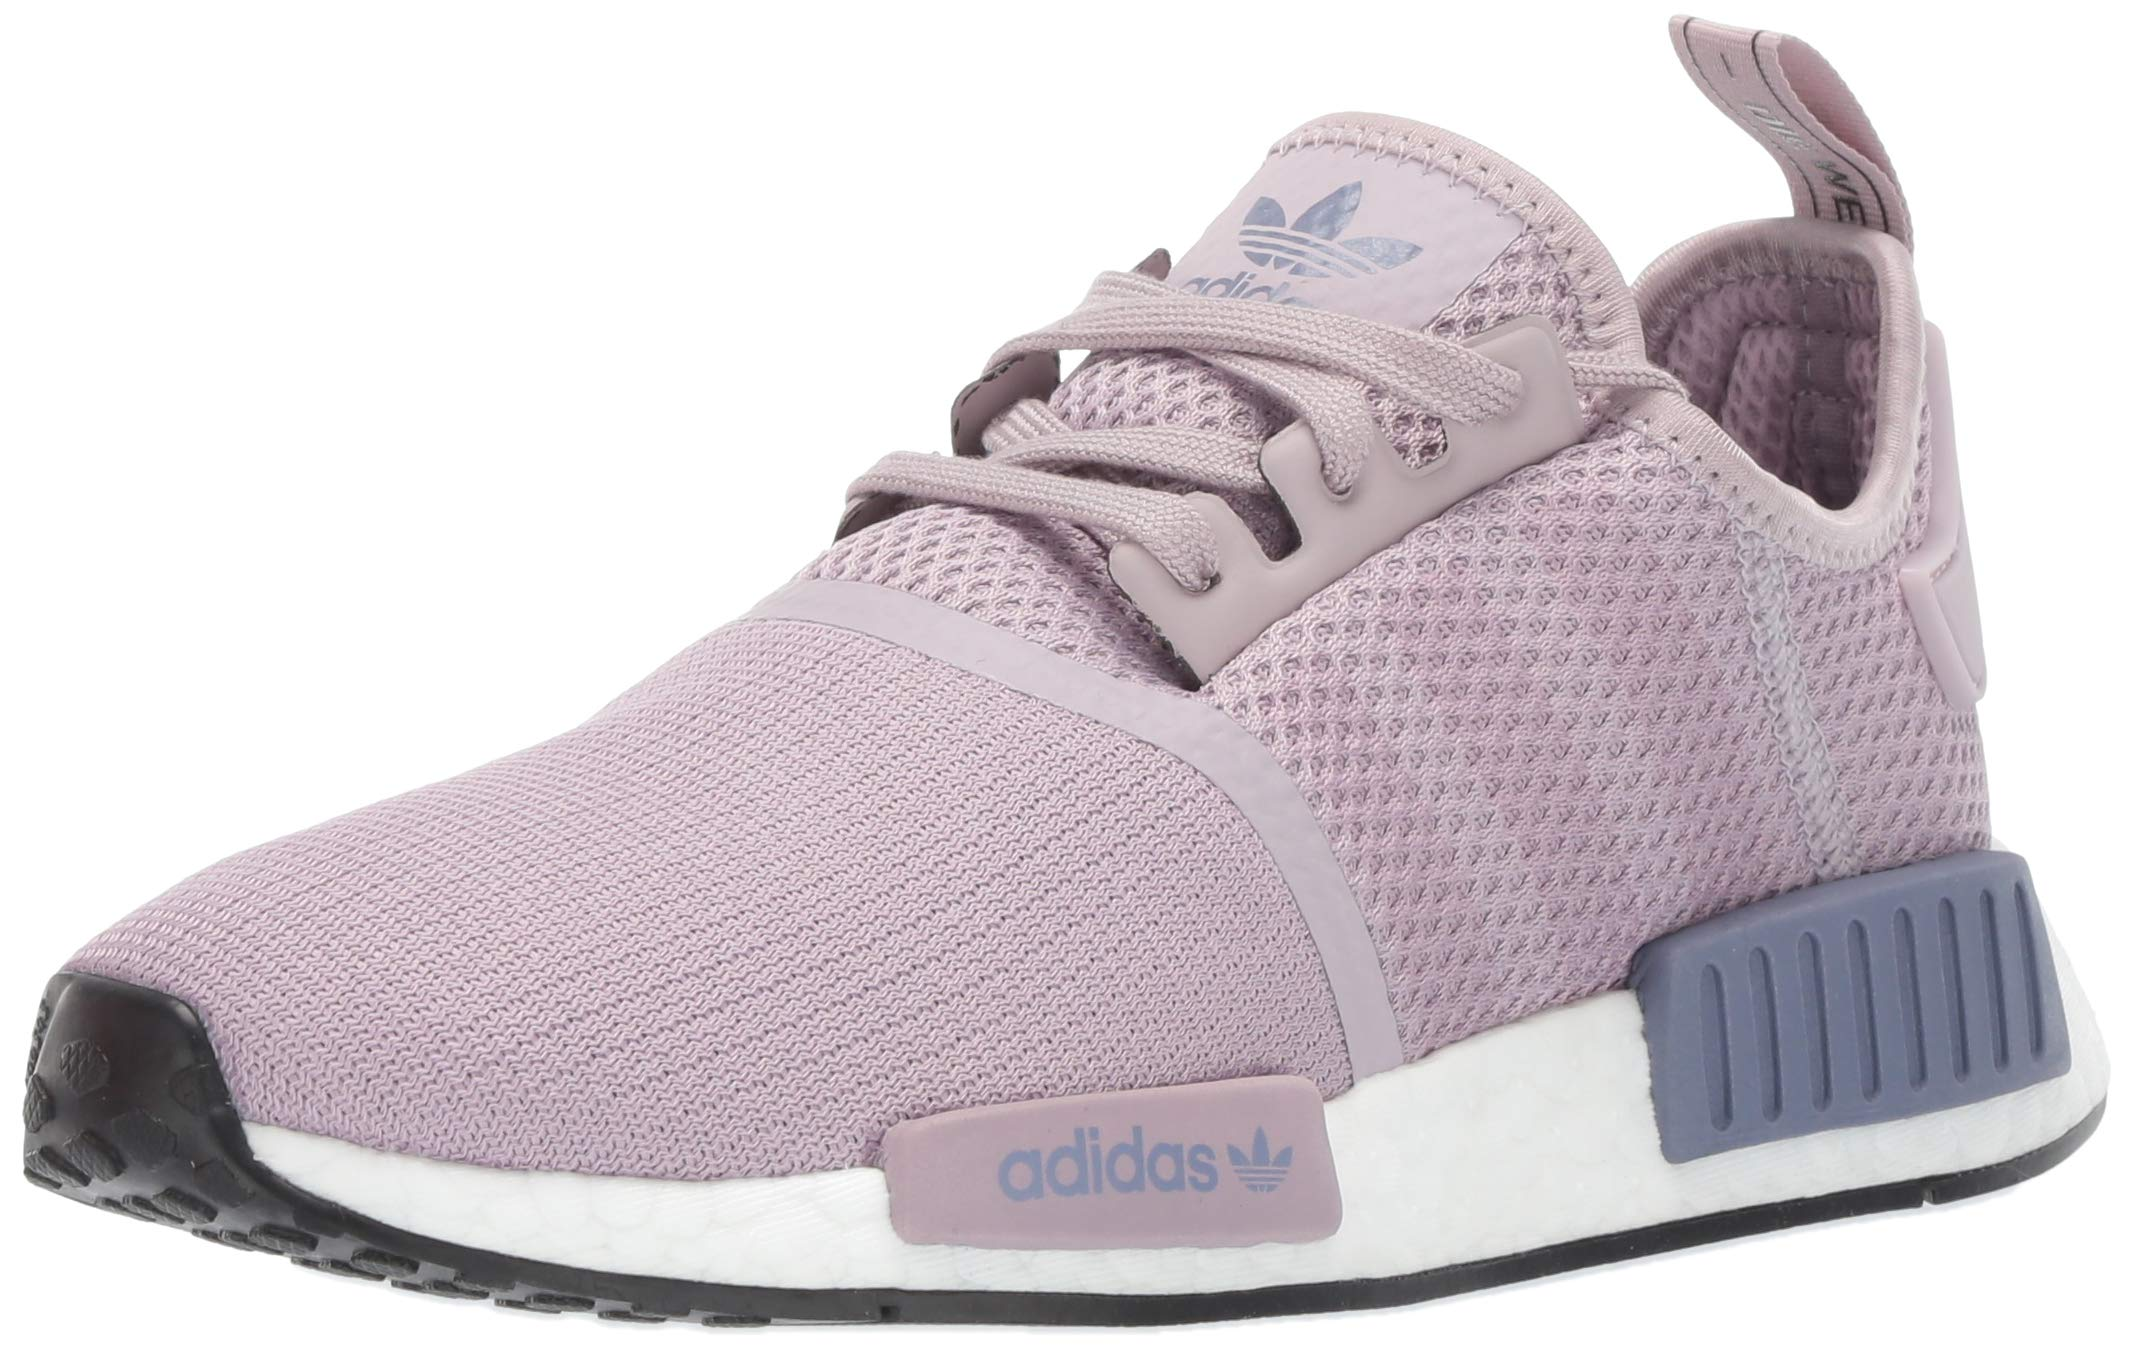 adidas Originals Women's NMD_R1 Running Shoe Soft Vision/raw Indigo, 5 M US